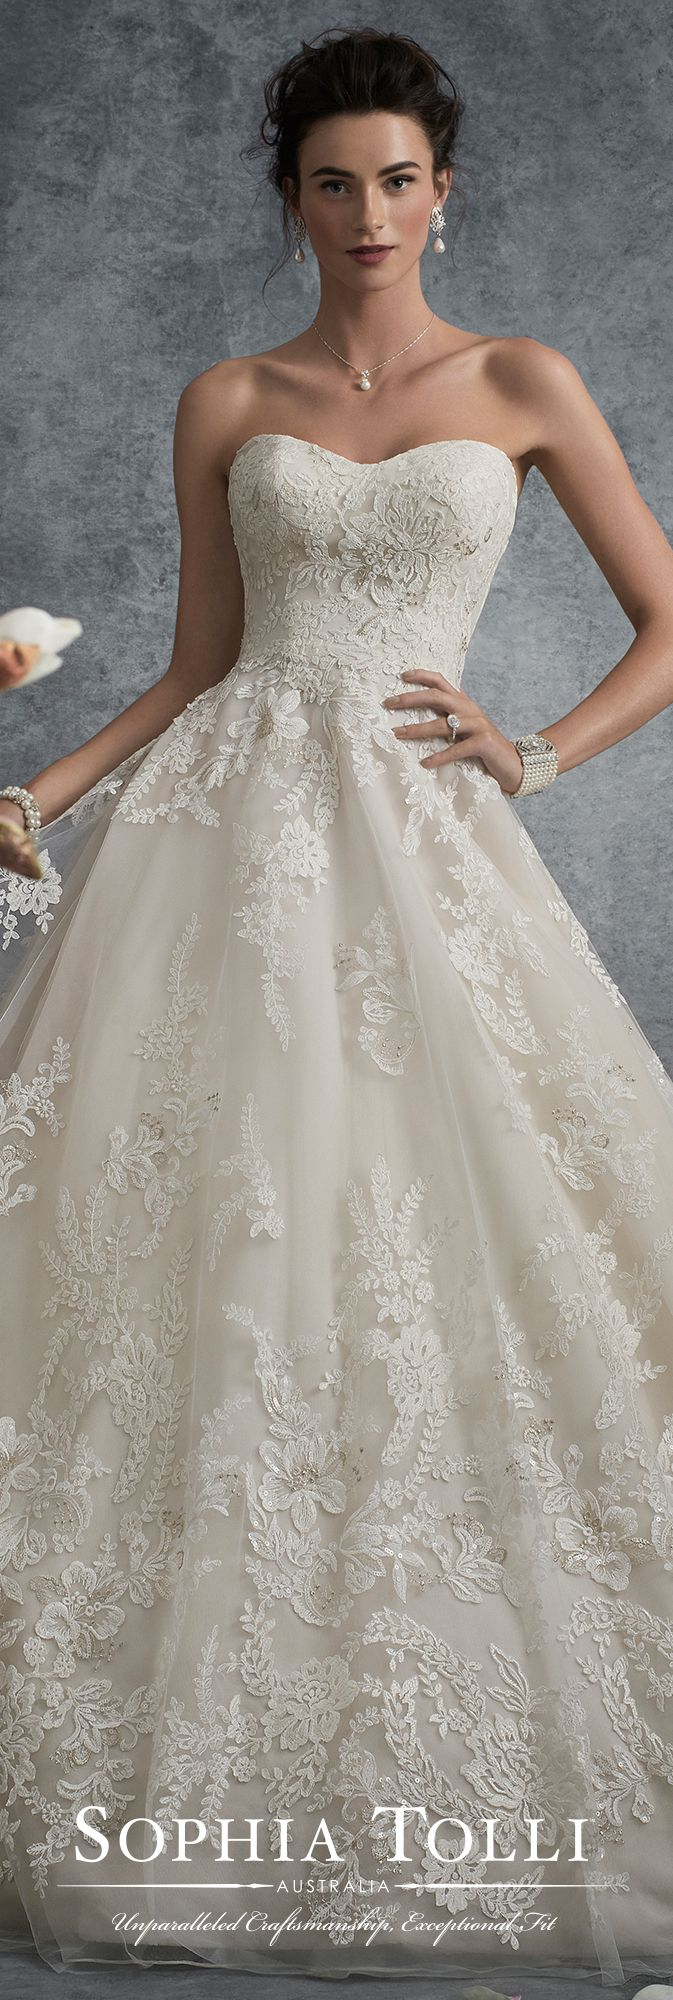 Beautiful off white lace wedding dress with stunning embroidery.